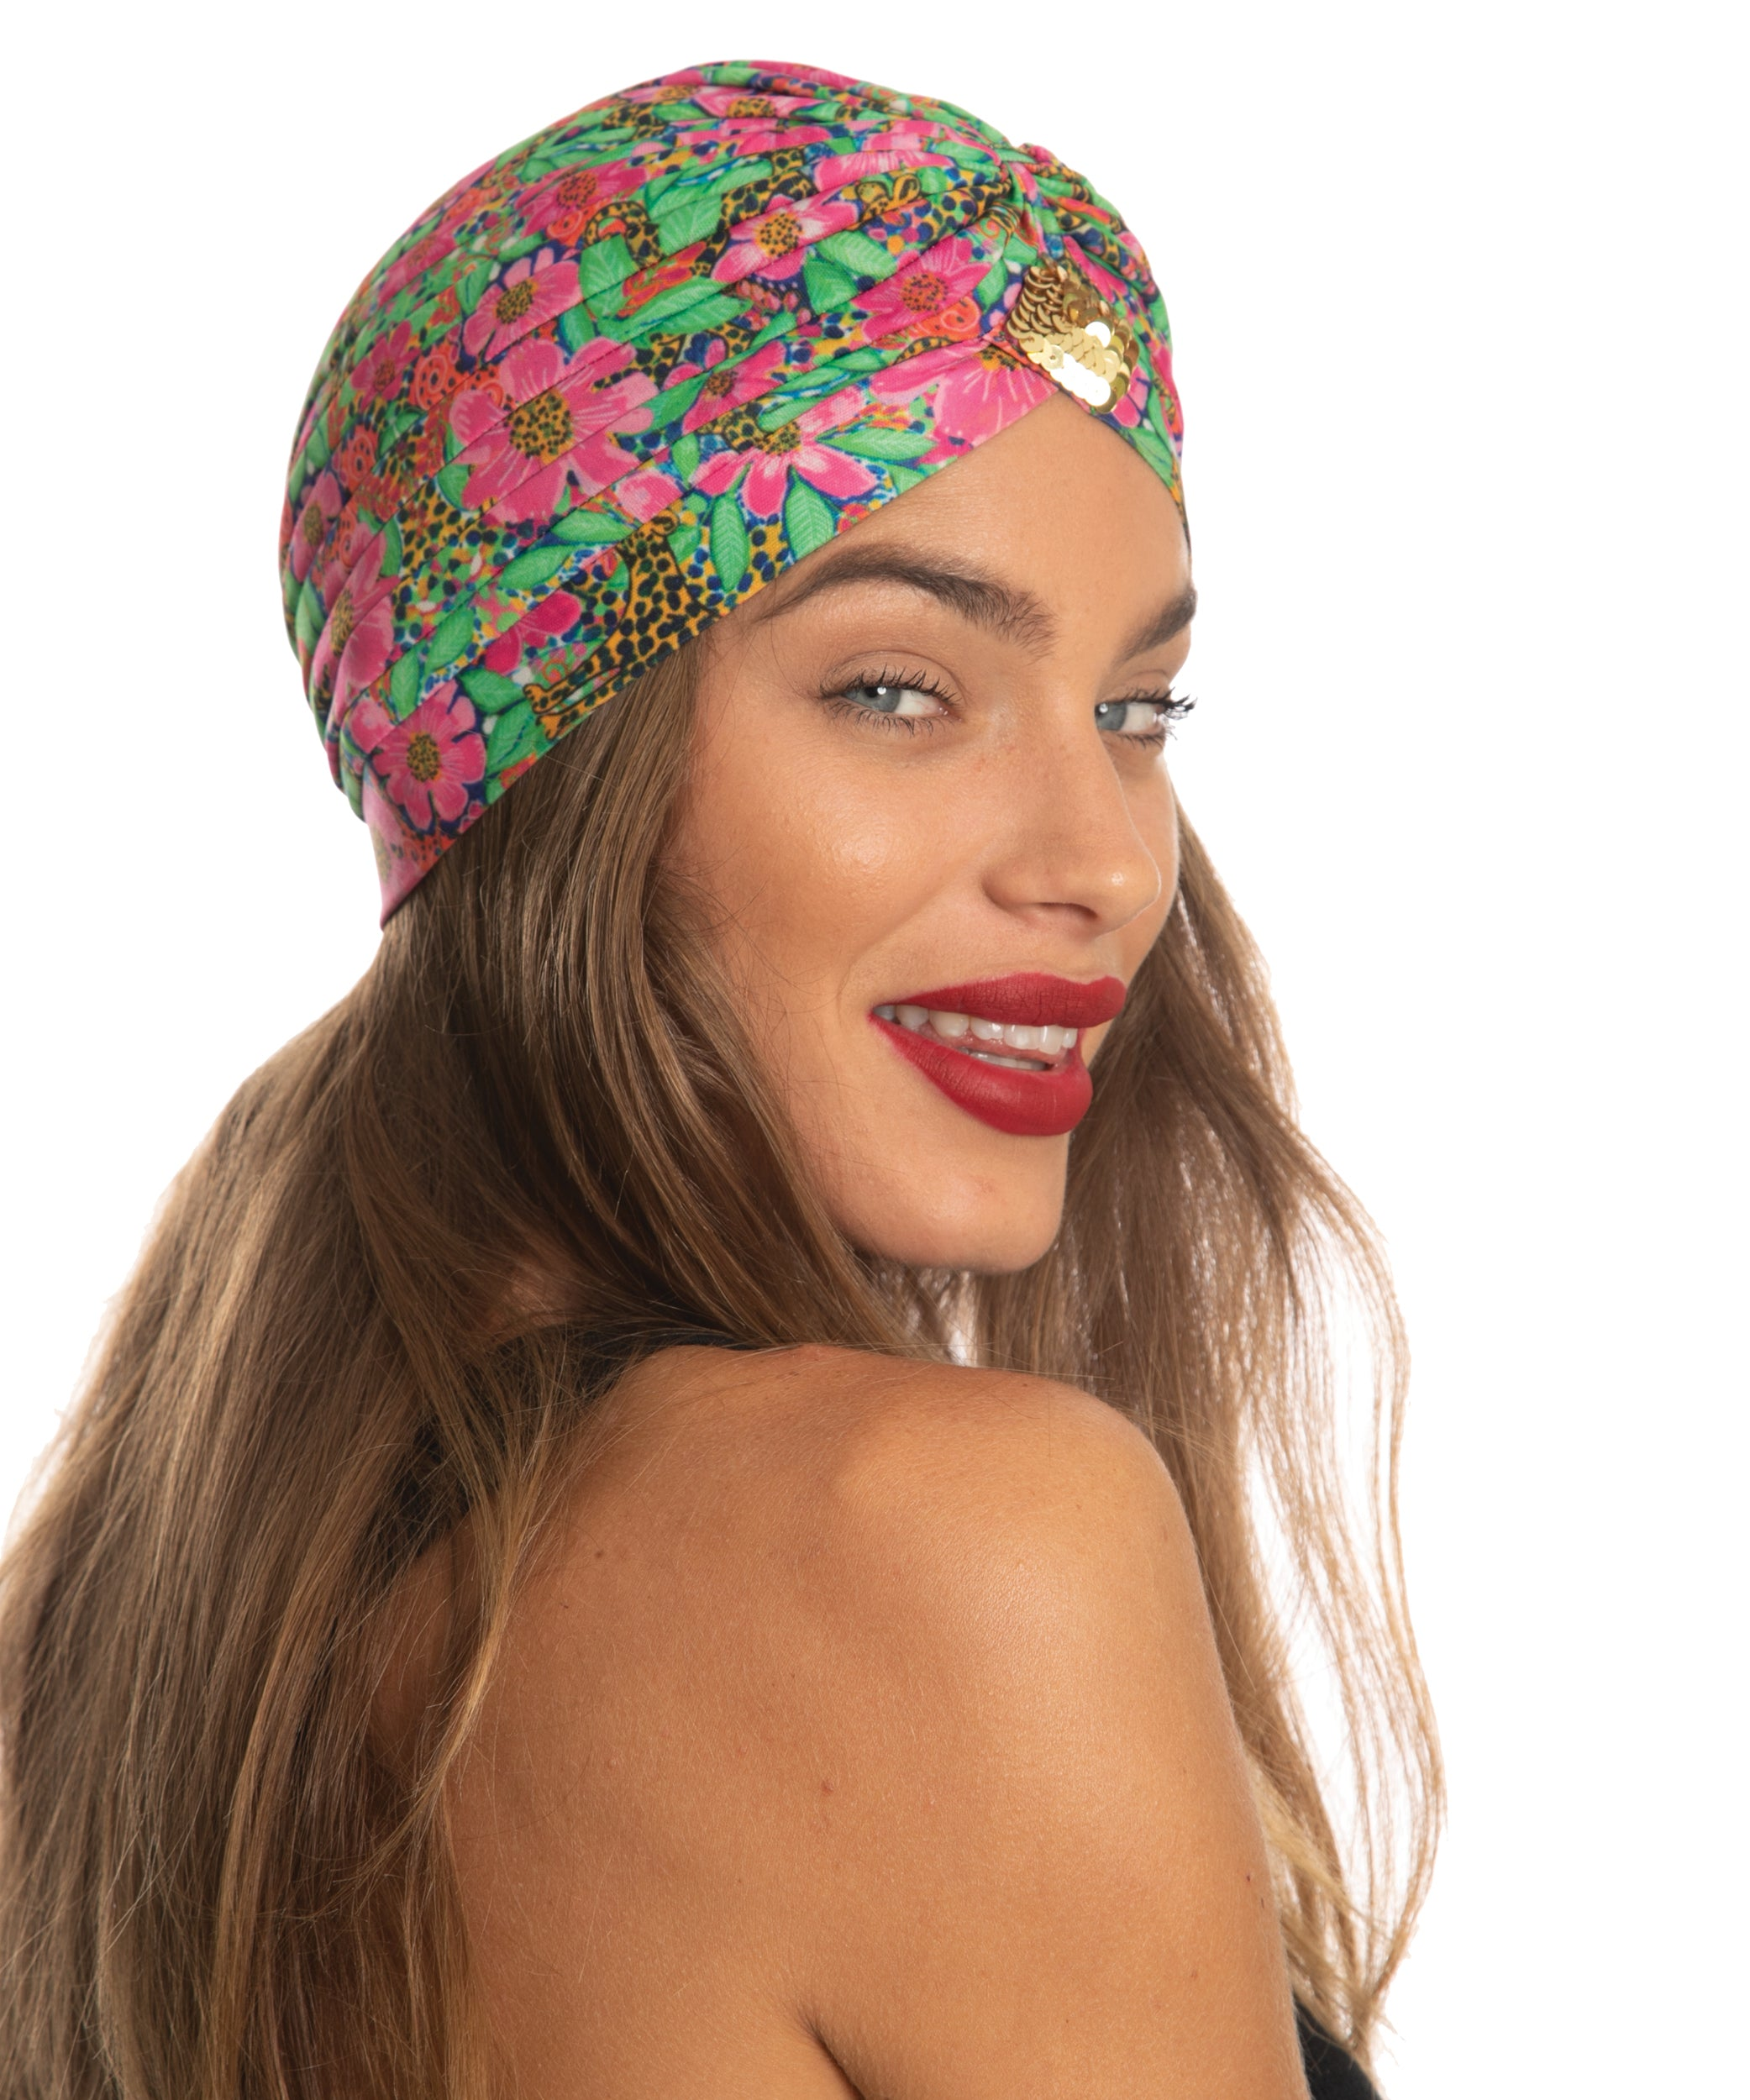 The Floral Cheetah Turban